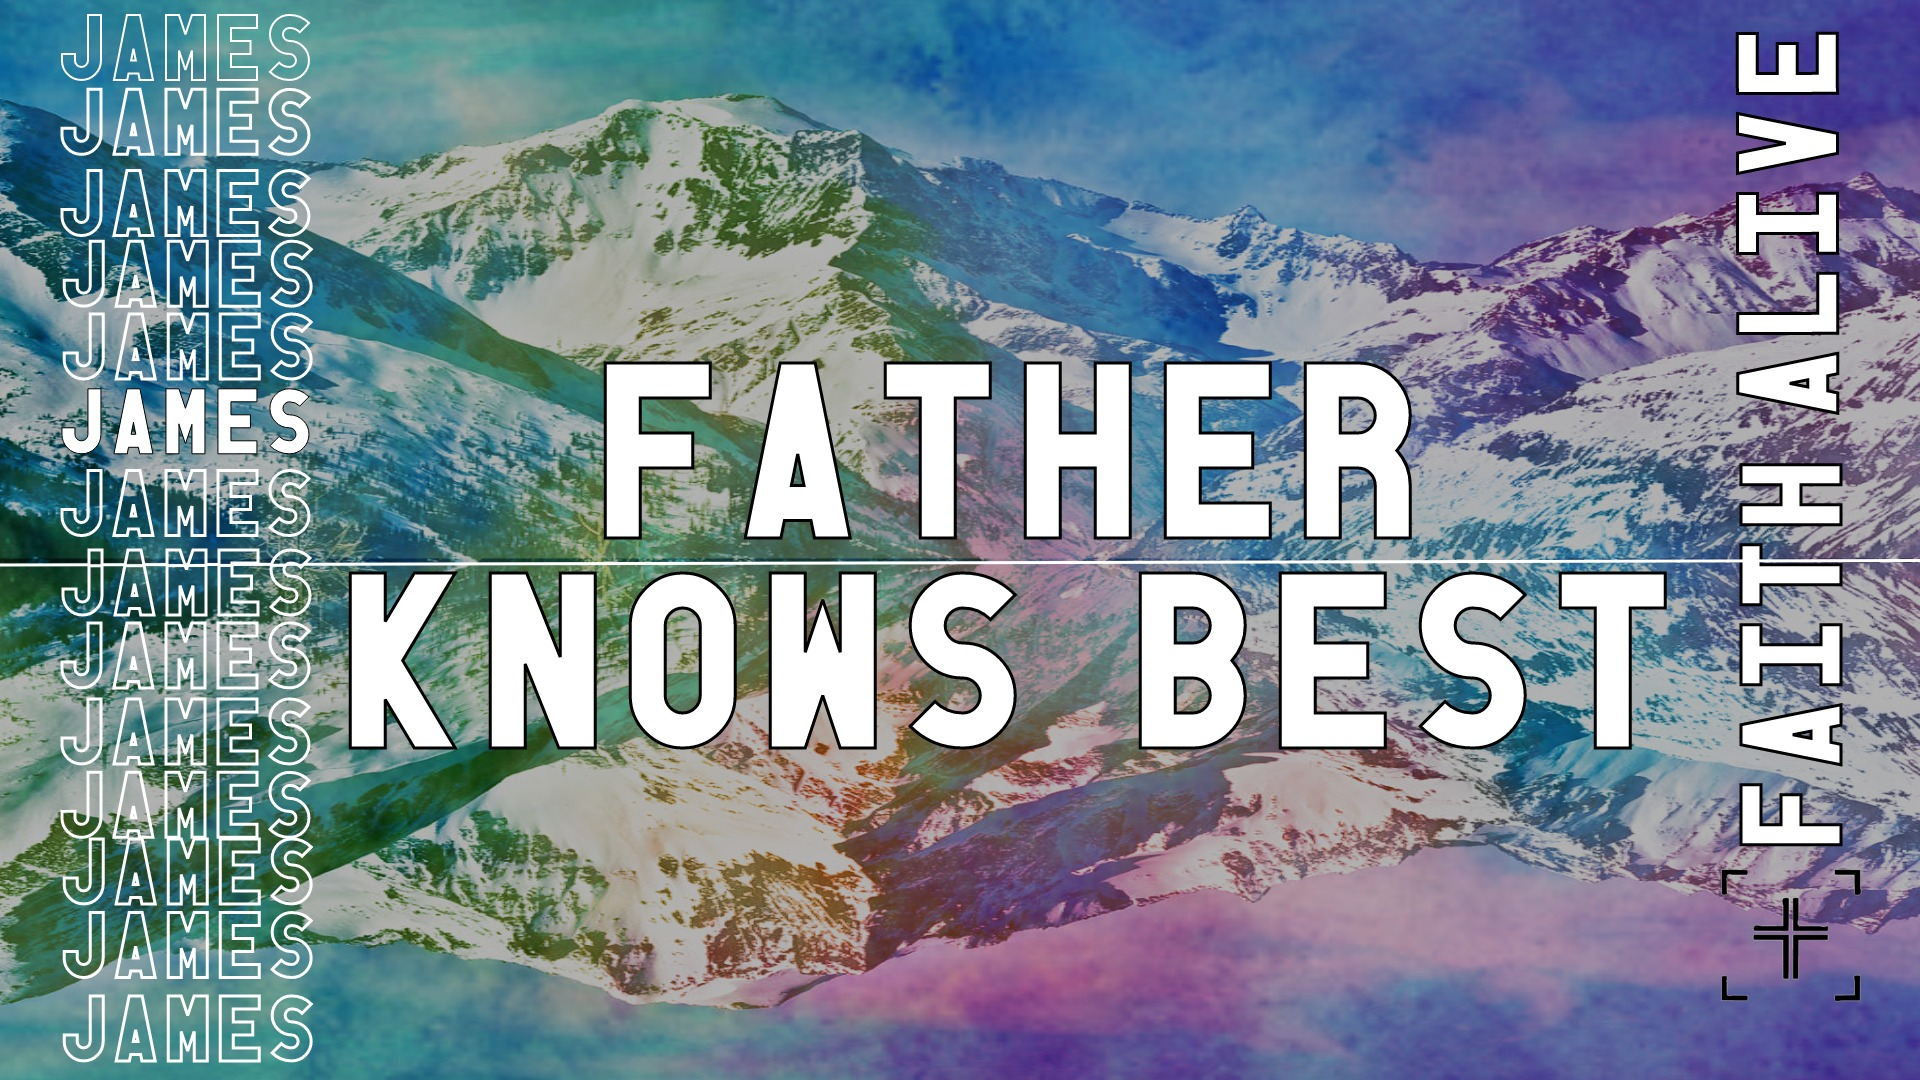 fathers knows best.jpeg